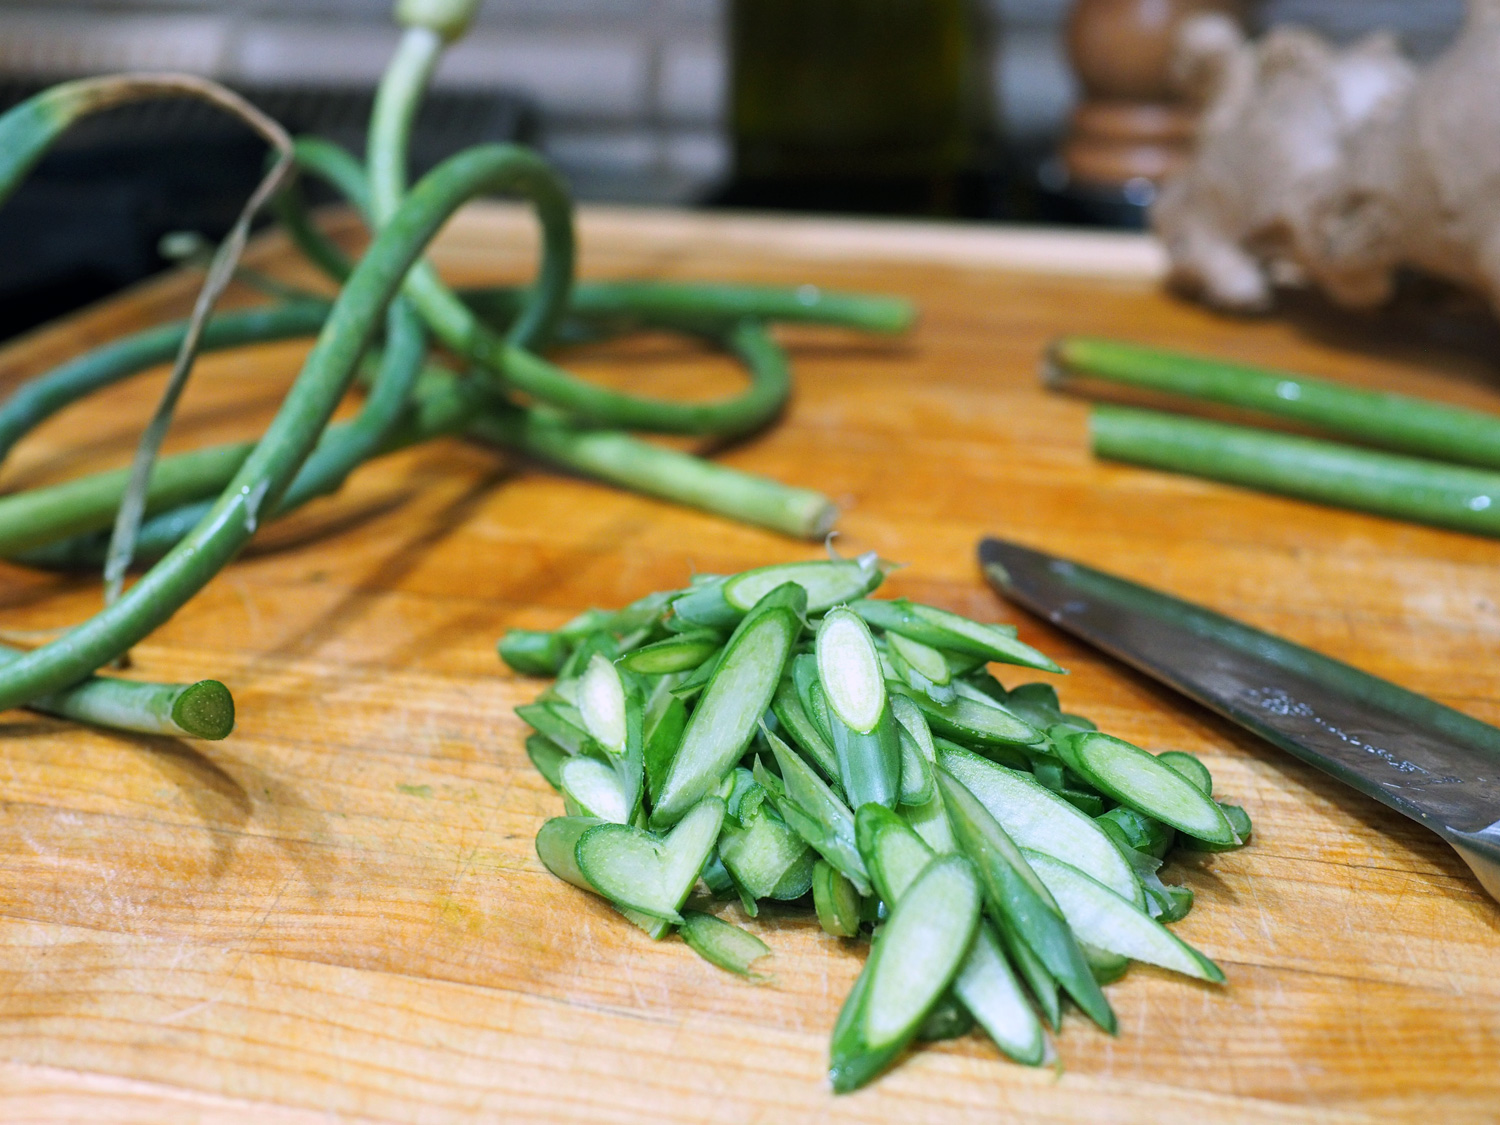 Thinly slice the garlic scapes. I like the diagonal, as it gives more surface area when sautéing. Also, cut off the end of the garlic scape and toss out, as this part, much like that of an asparagus, can be tough.